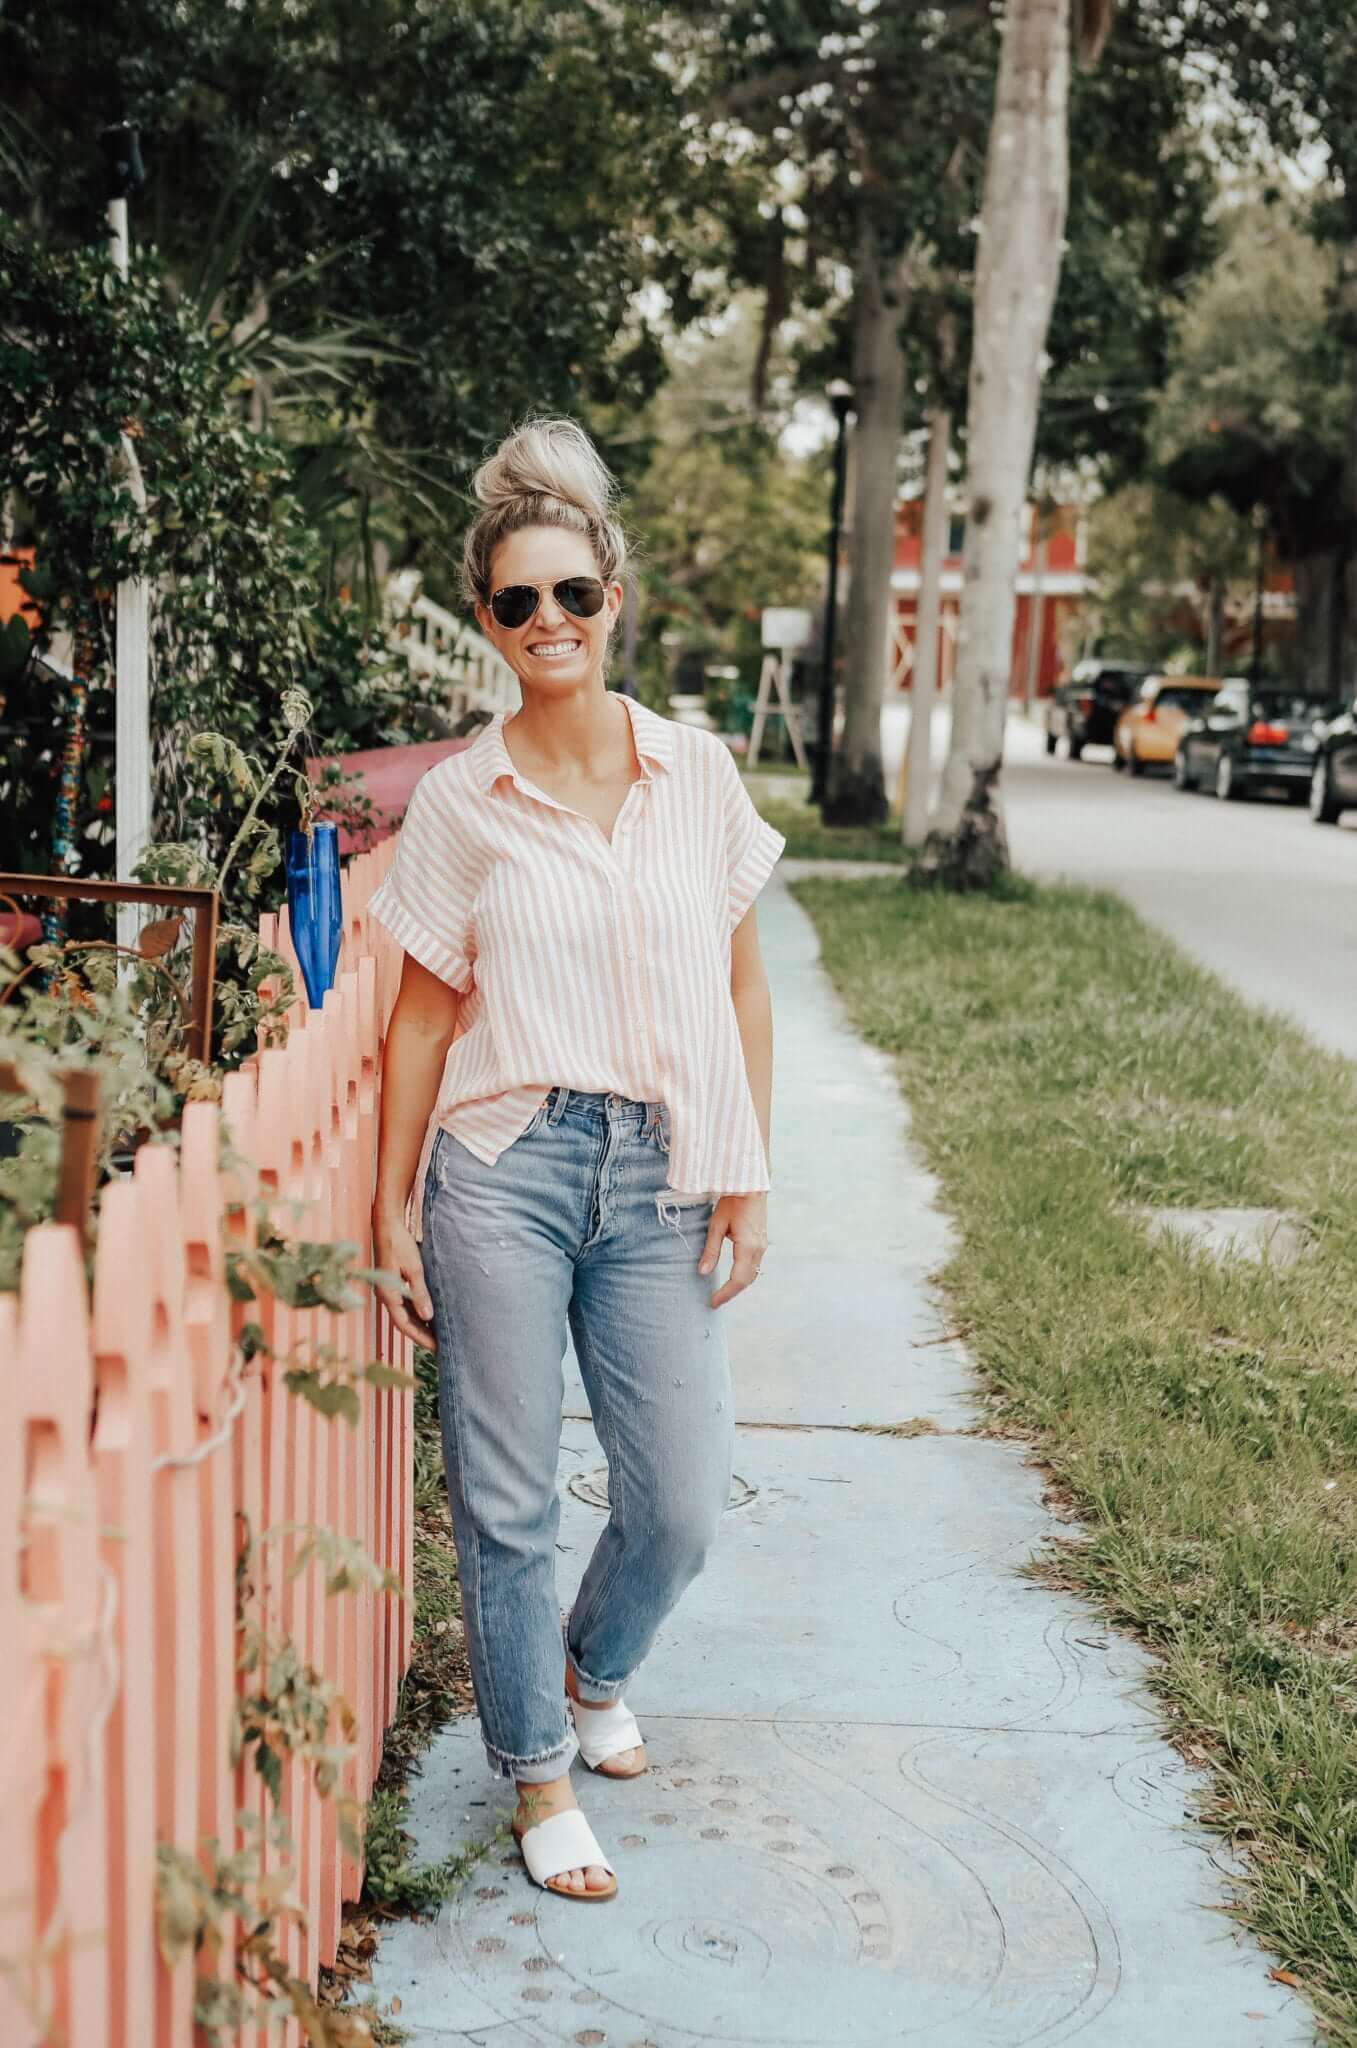 blush and stripes in a top on a girl in a park